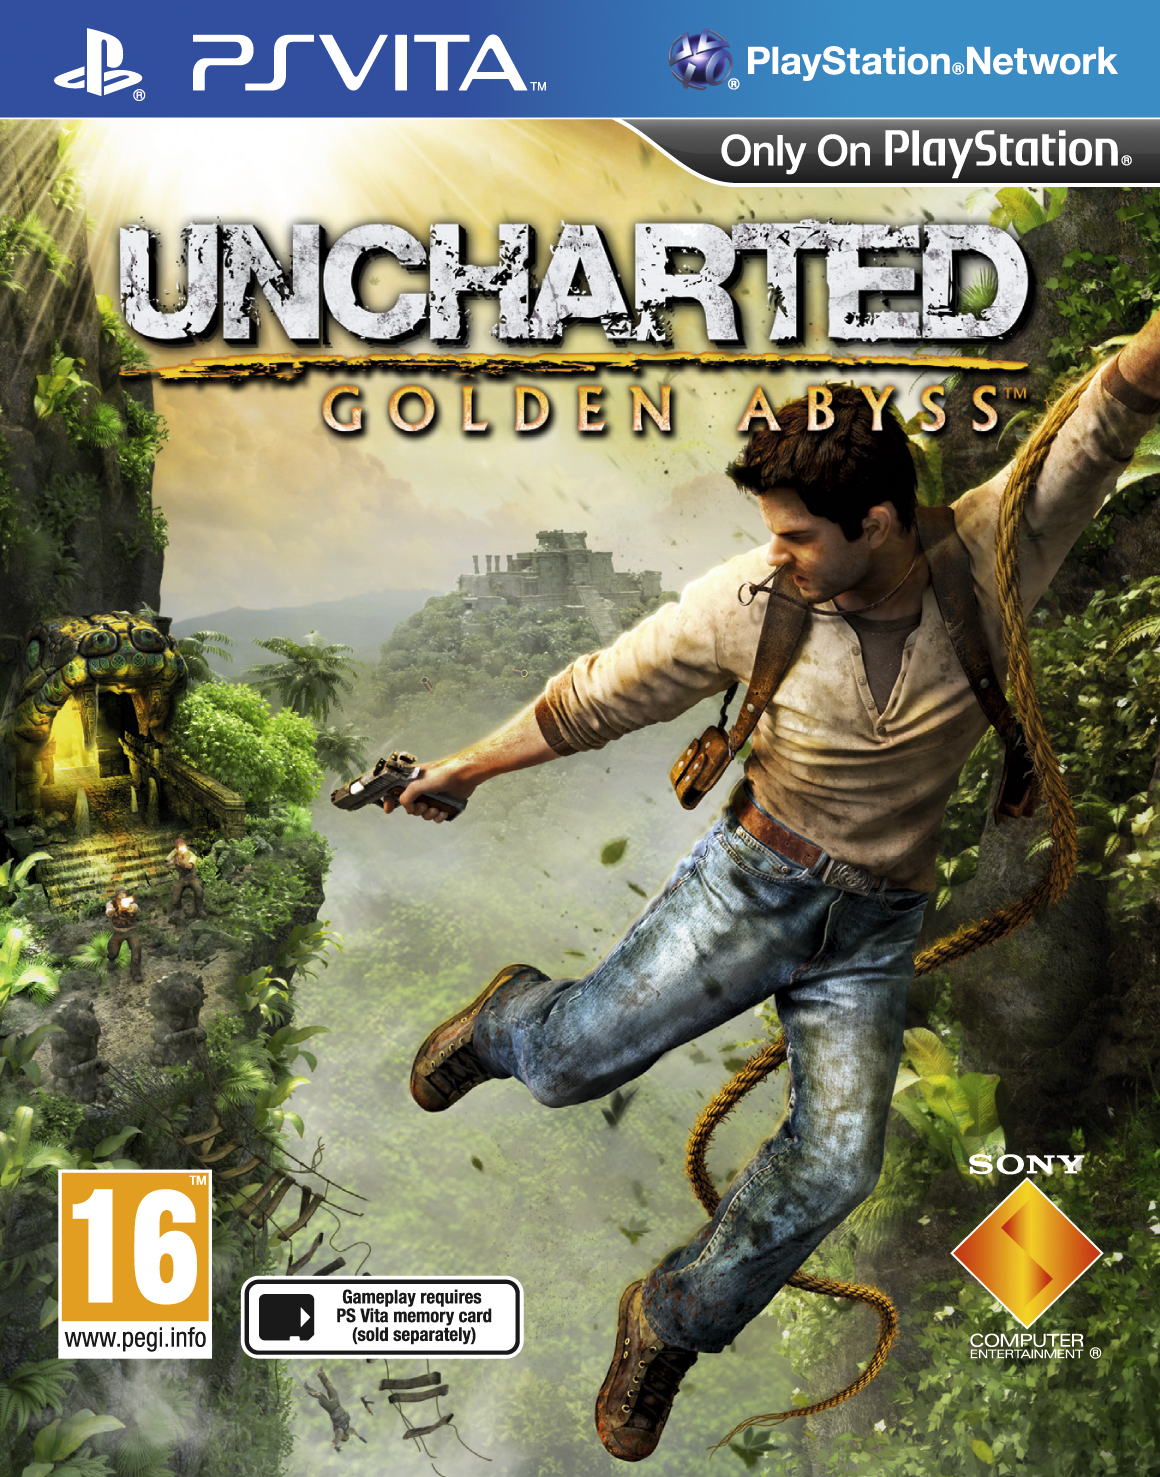 Uncharted Golden Abyss PS Vita Packshot